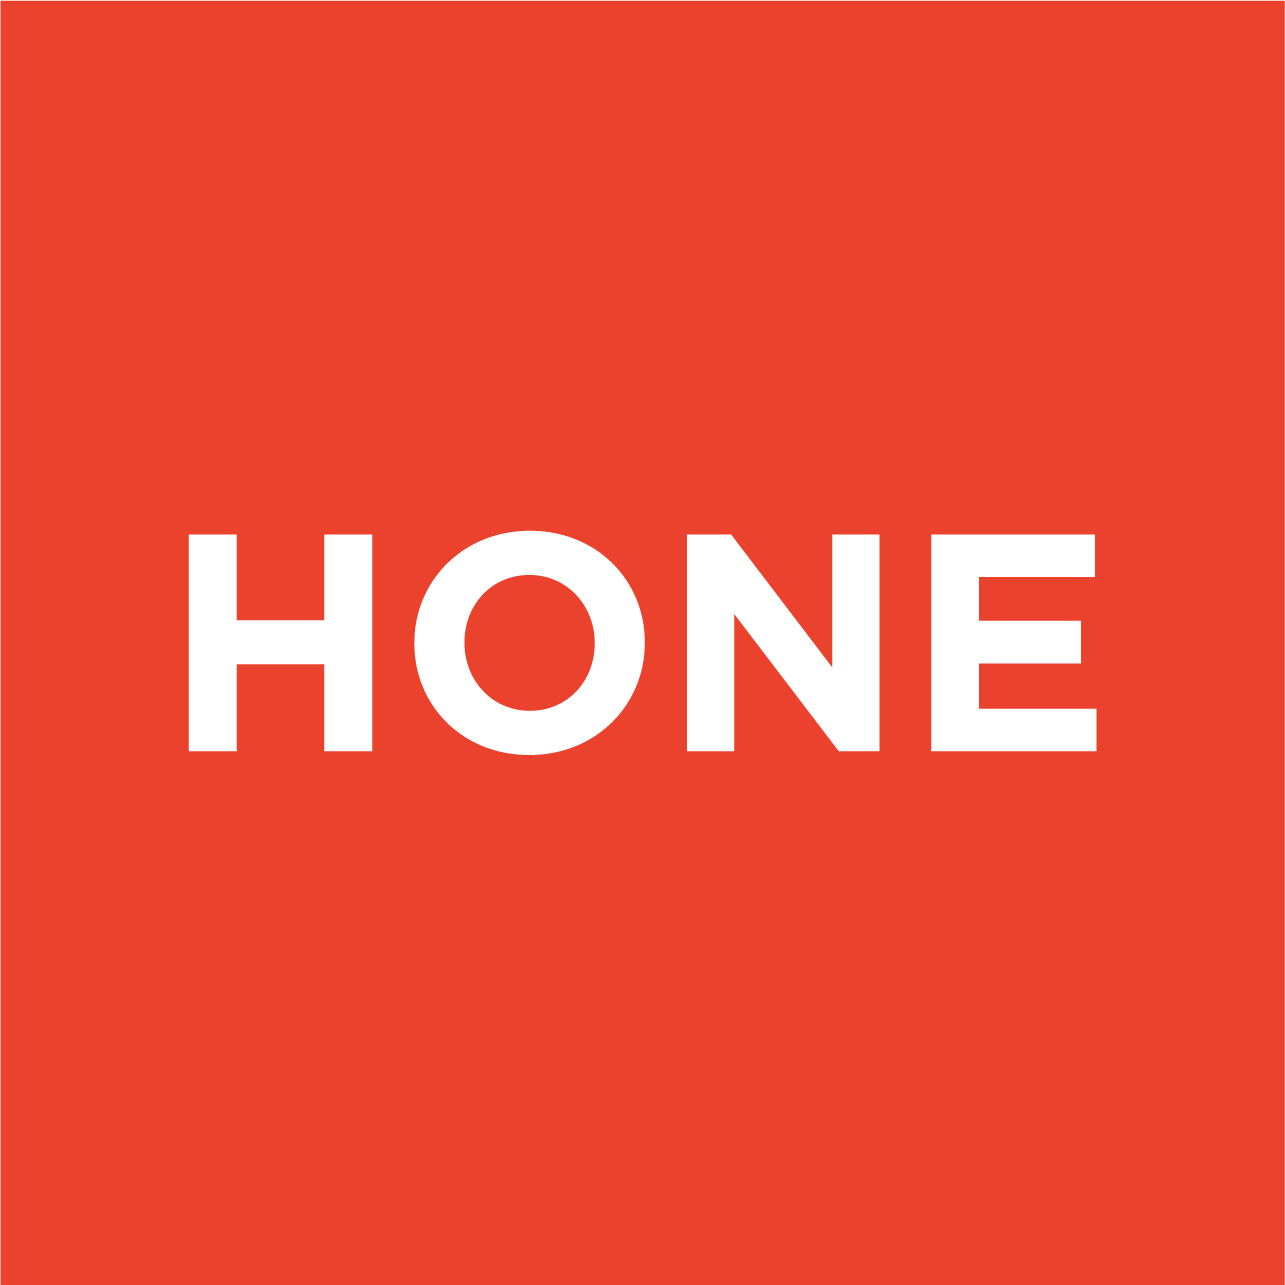 Online Marketing Company, Internet Marketing Services - HONE